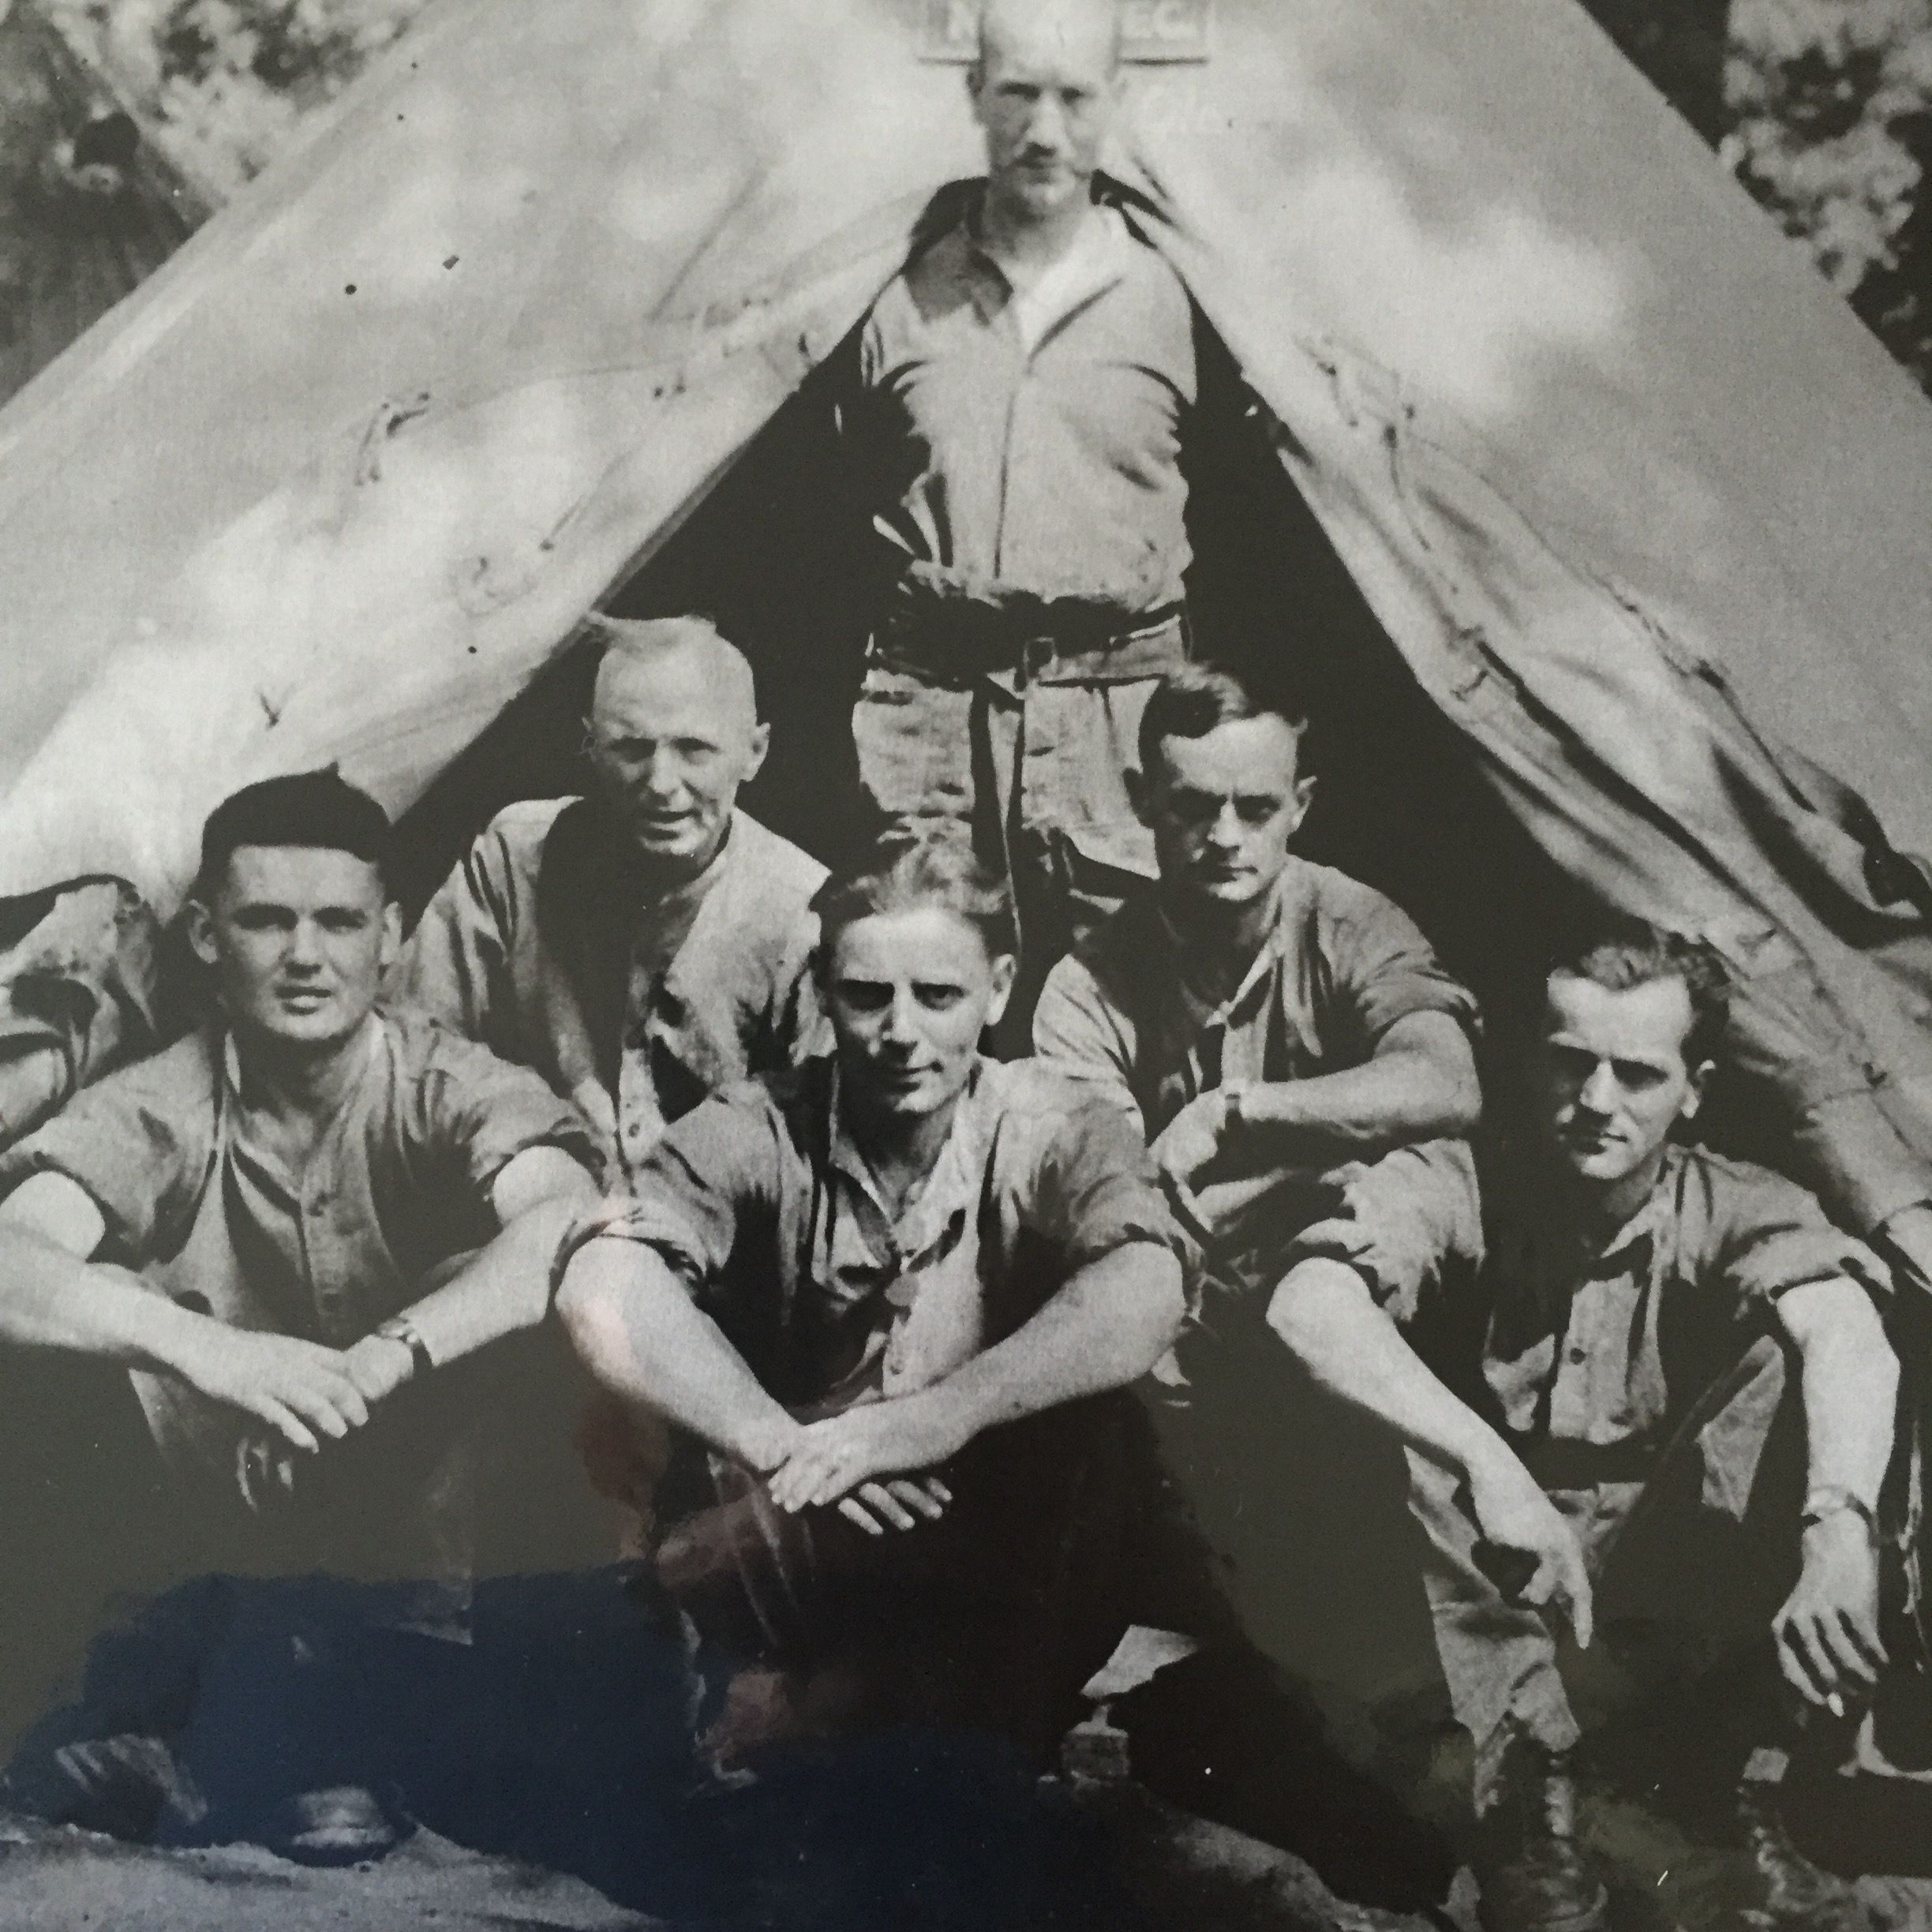 My grandfather Lawrence Bradley (sitting on the left).